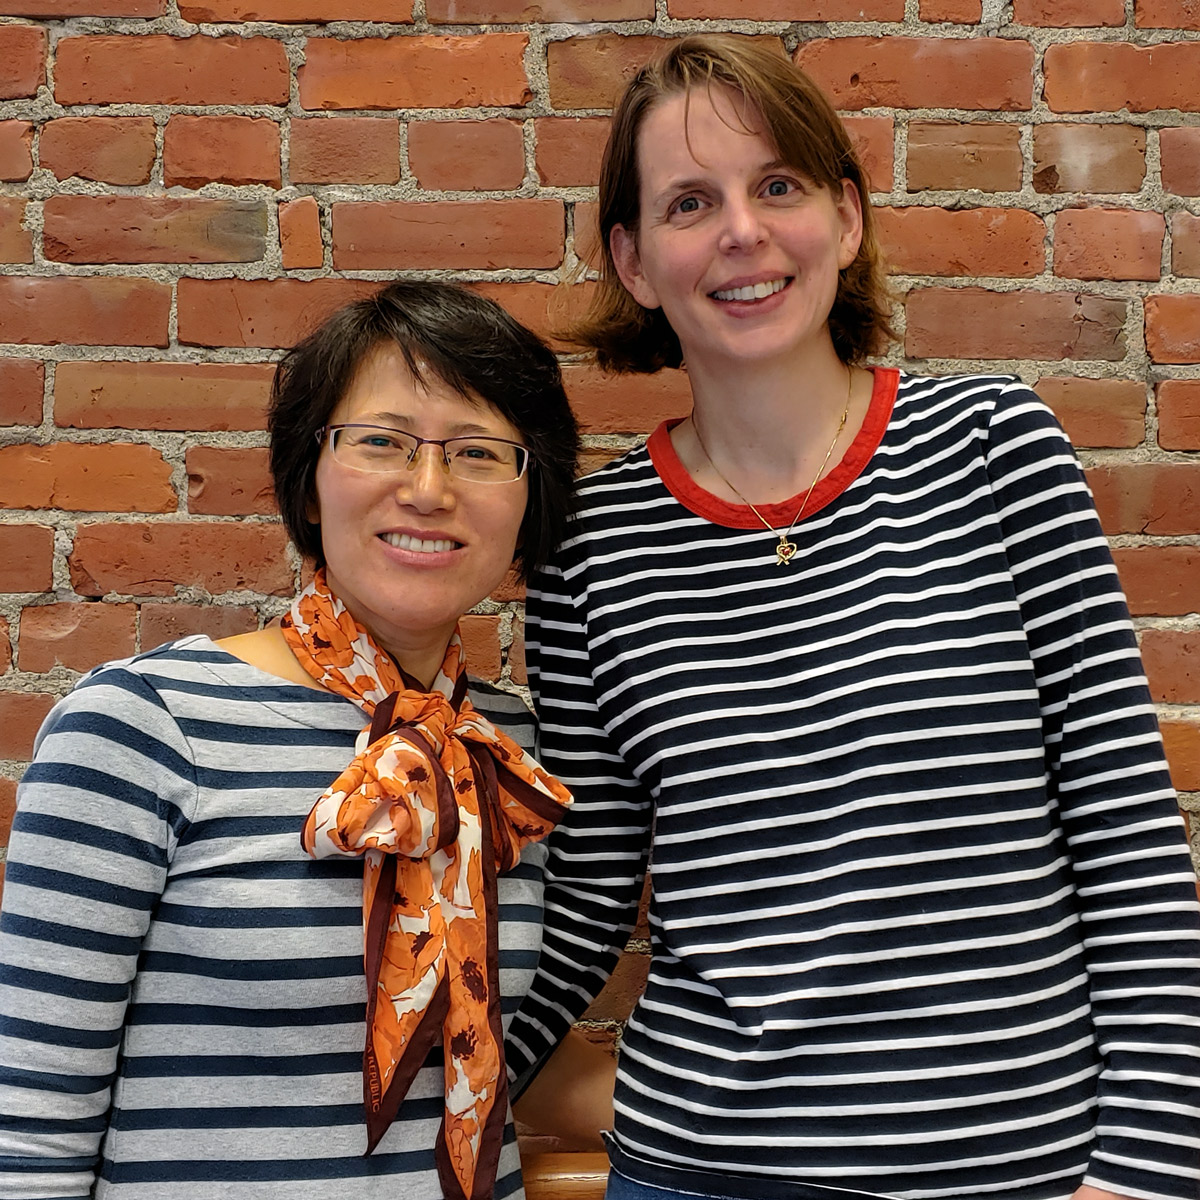 Two nursing faculty members named Mo Sin and Alise Owens are standing beside each other